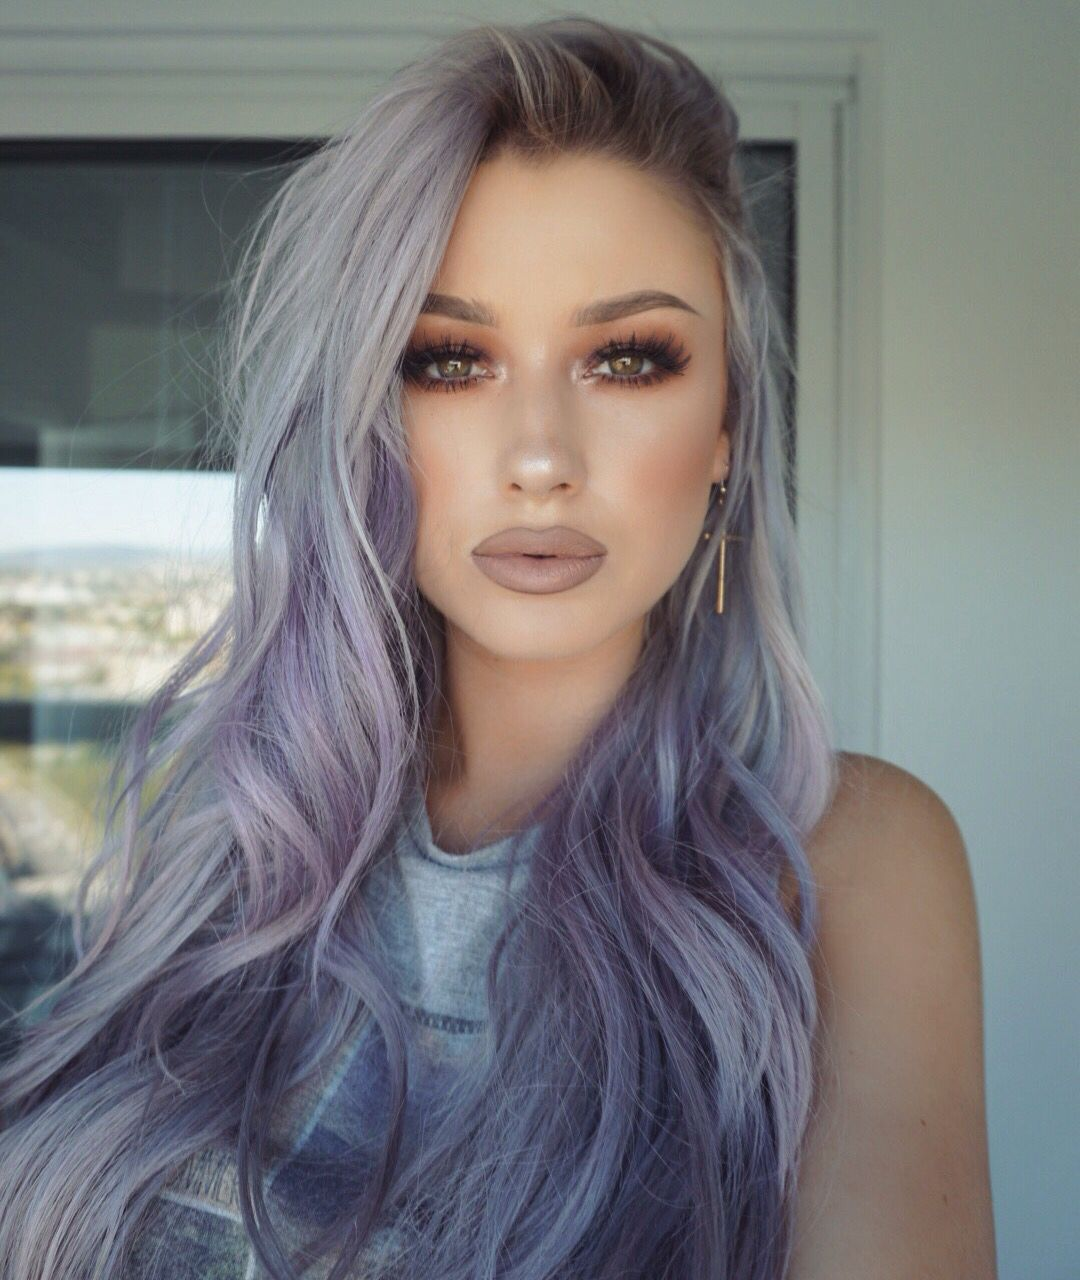 The 5 Most HairColor Ideas for